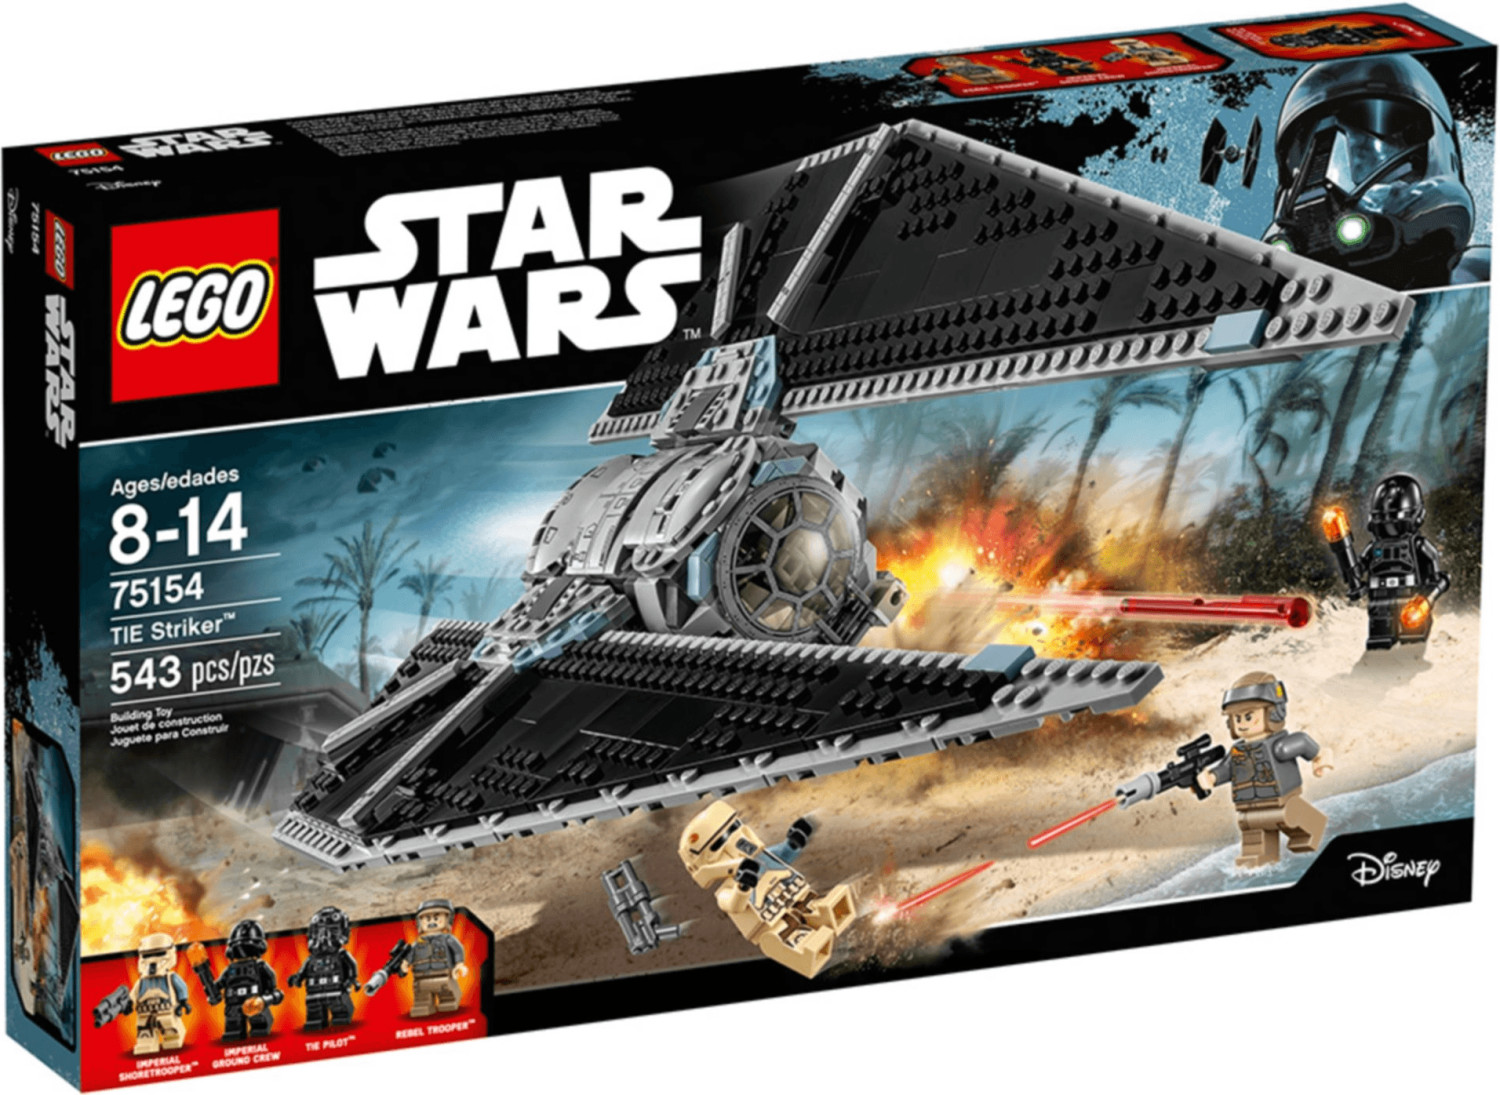 LEGO Star Wars - TIE Striker (75154)